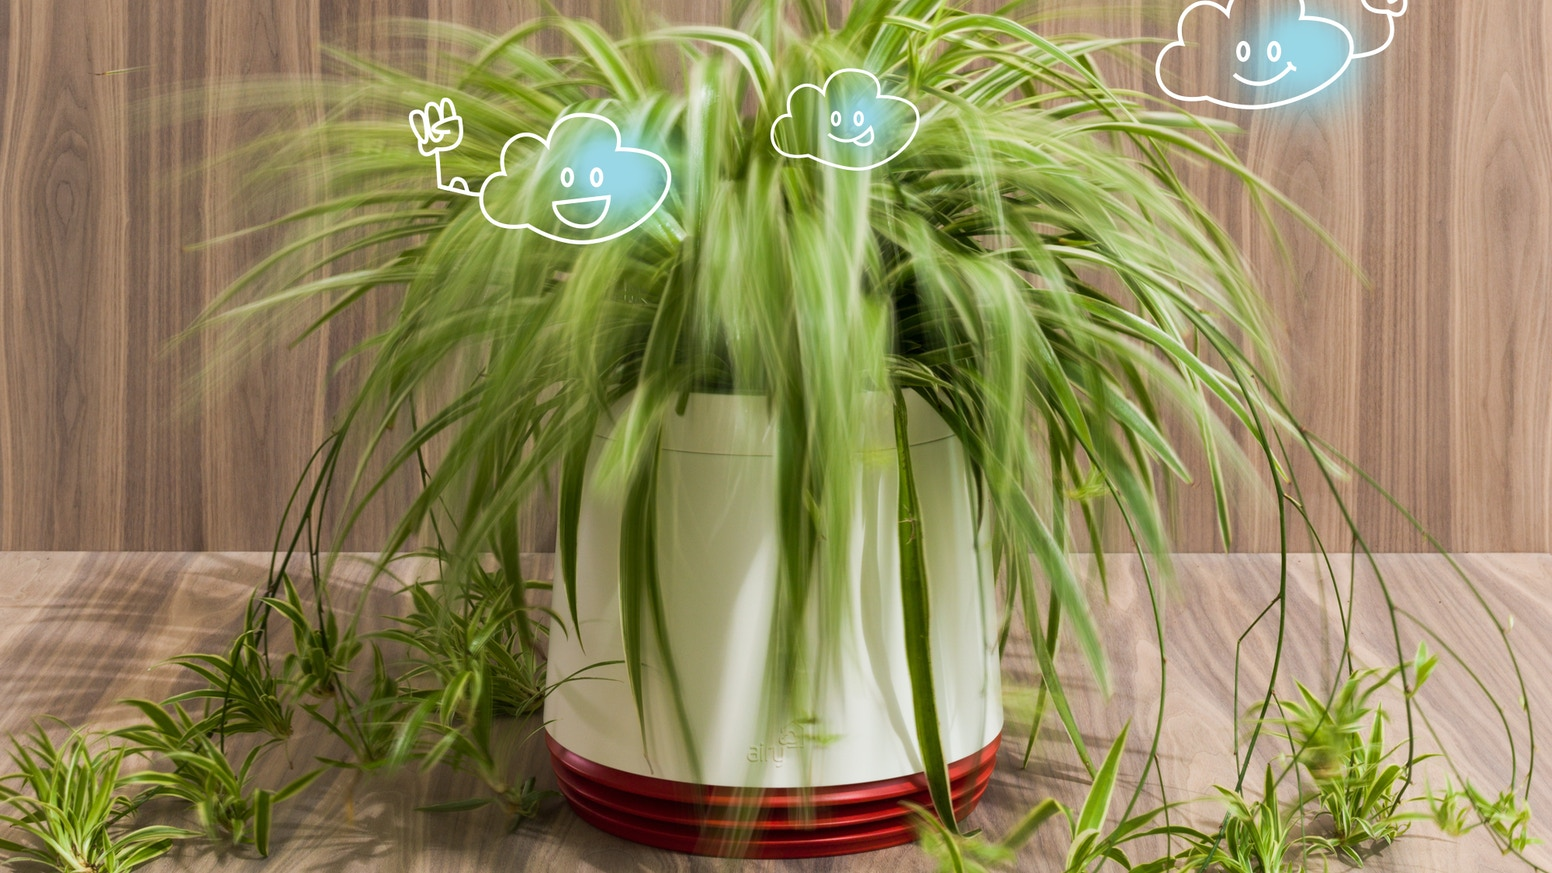 Airy Your Solution Against Indoor Air Pollution By Airy Greentech